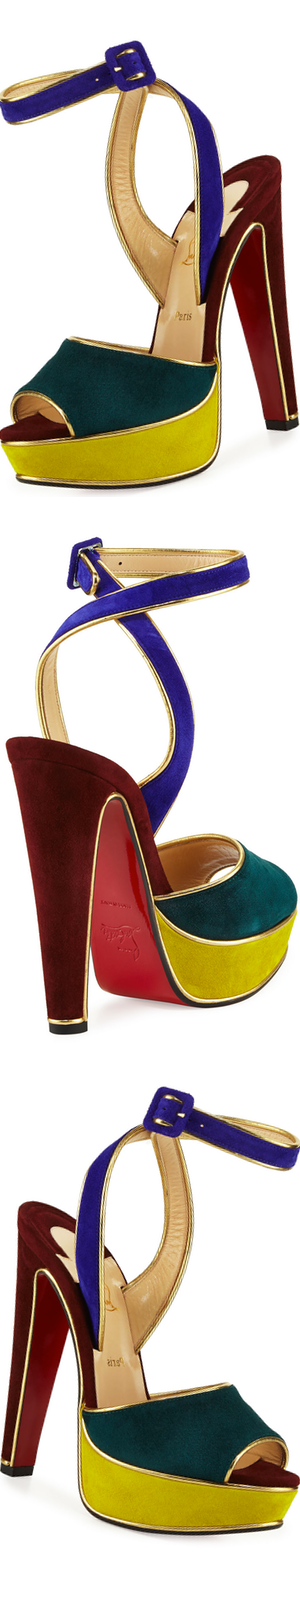 Christian Louboutin Louloudance Suede Platform Red Sole Sandal, Multi